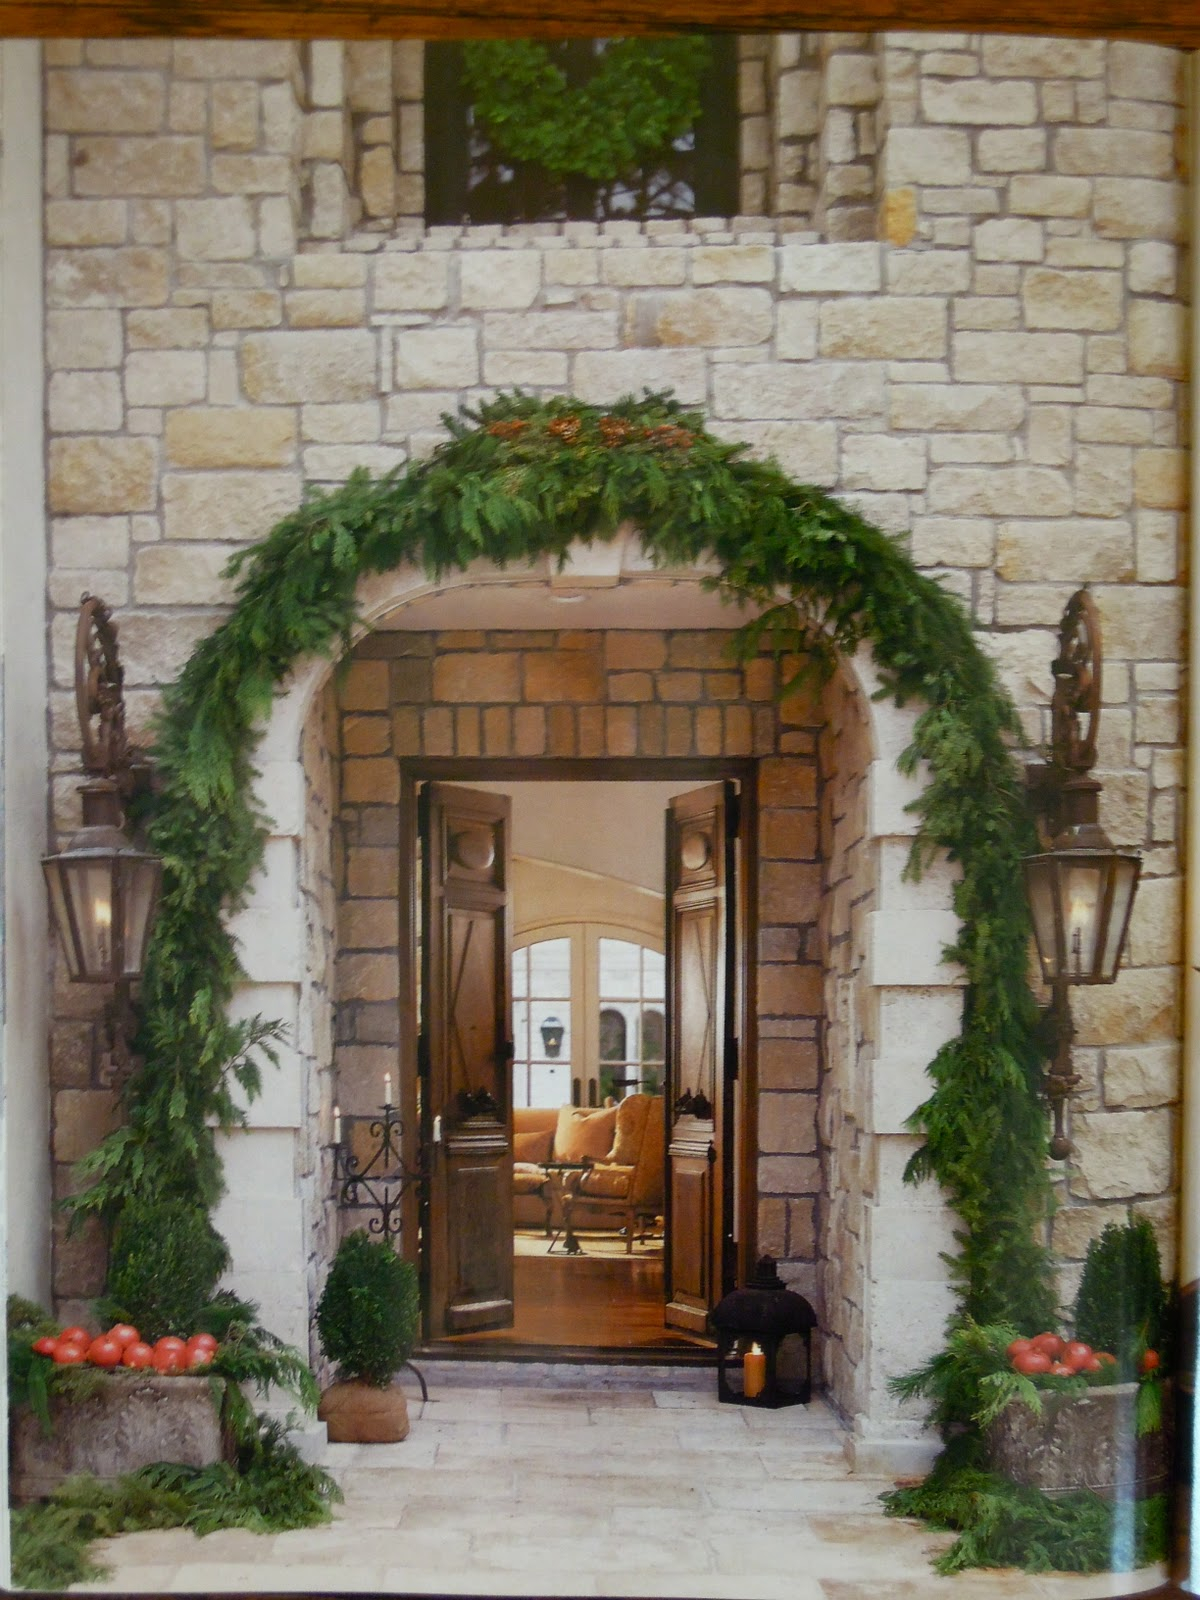 Antiqueaholics pamela pierce decorates for christmas for Decoration veranda